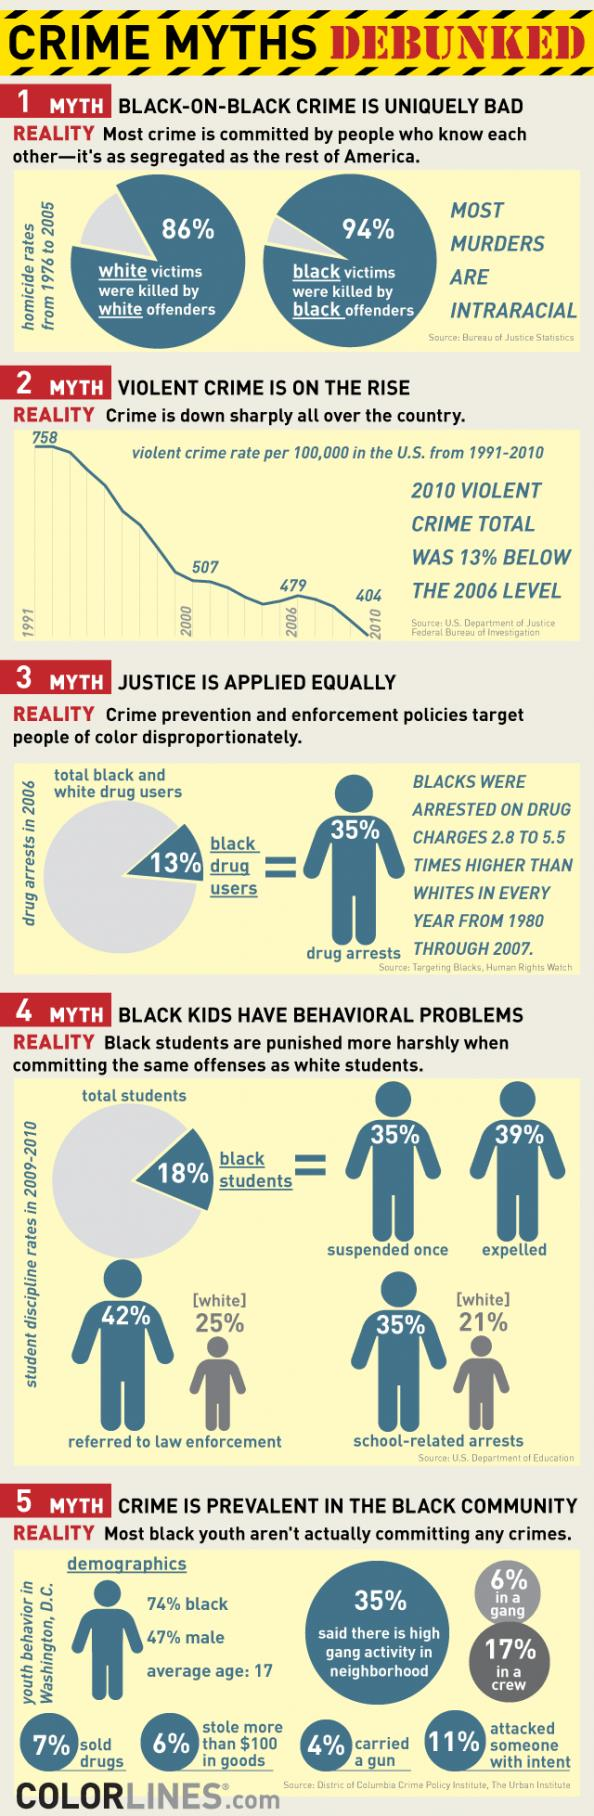 5 Myths About Crime And Race In America  ...